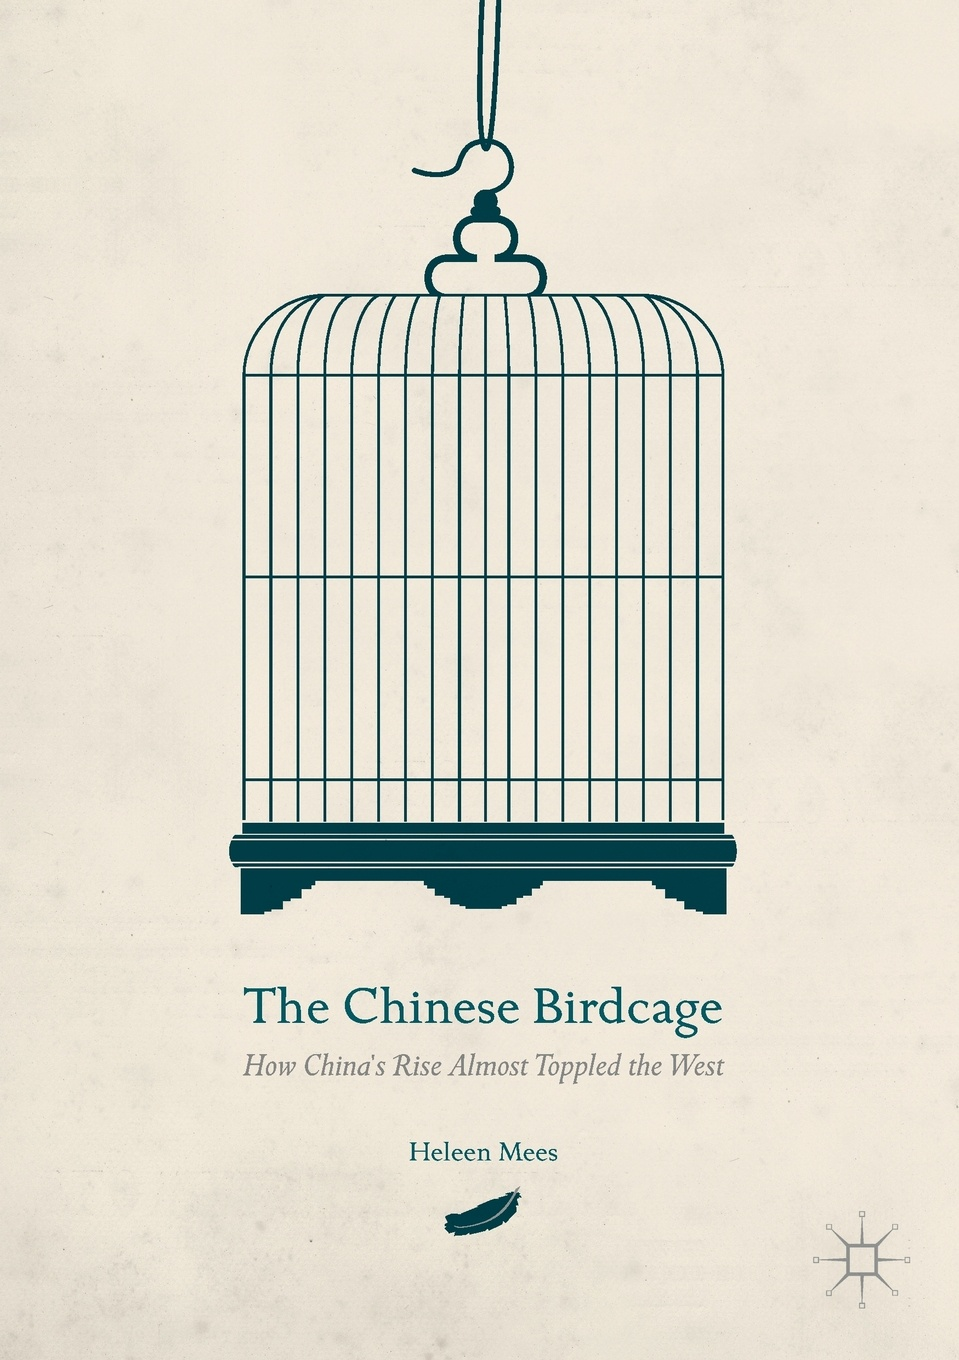 цены Heleen Mees The Chinese Birdcage. How China's Rise Almost Toppled the West